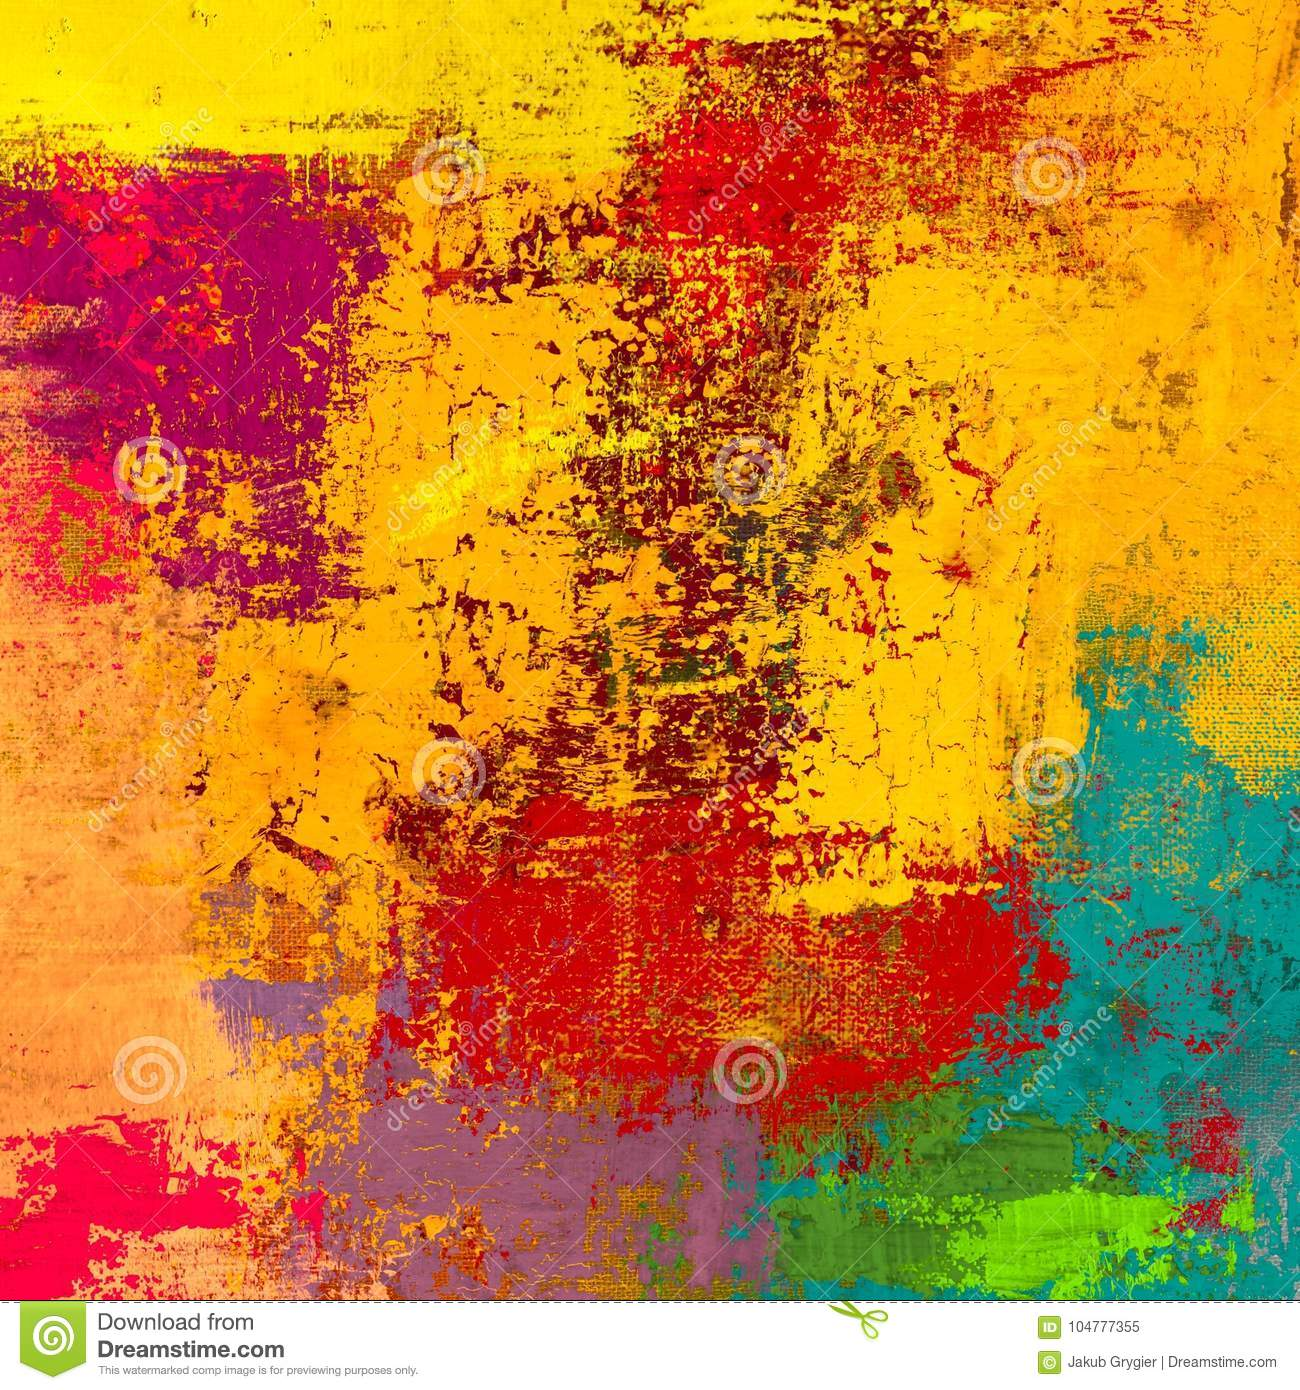 Oil Painting On Canvas Handmade Abstract Art Texture Colorful